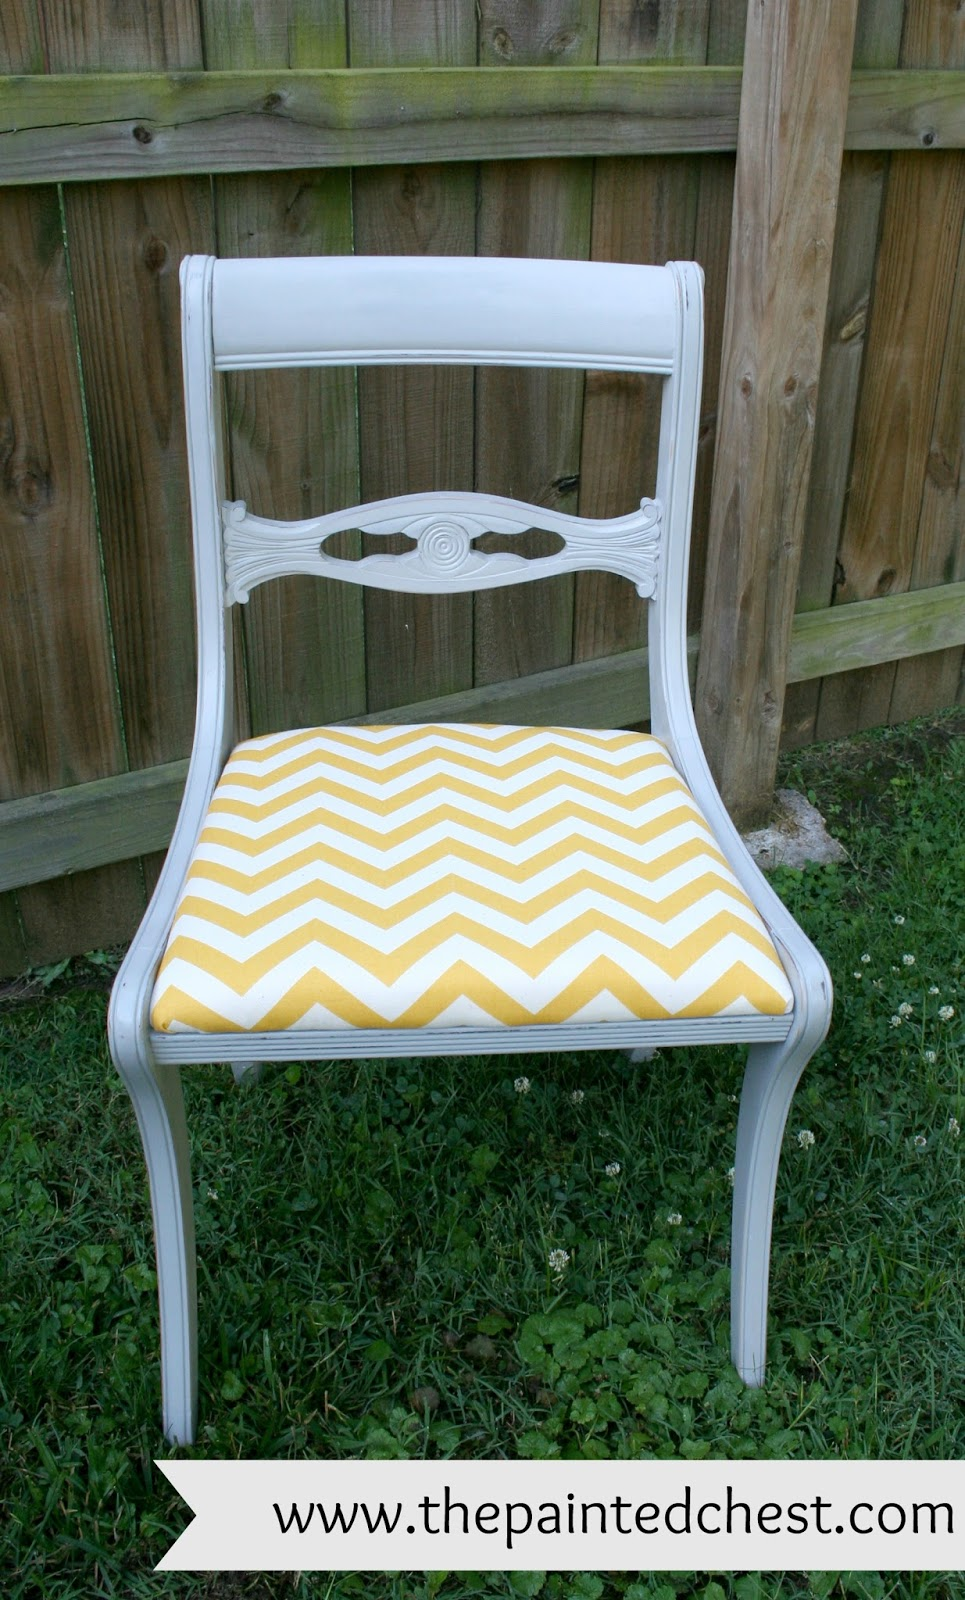 The Painted Chest: Duncan Phyfe Chair Makeover